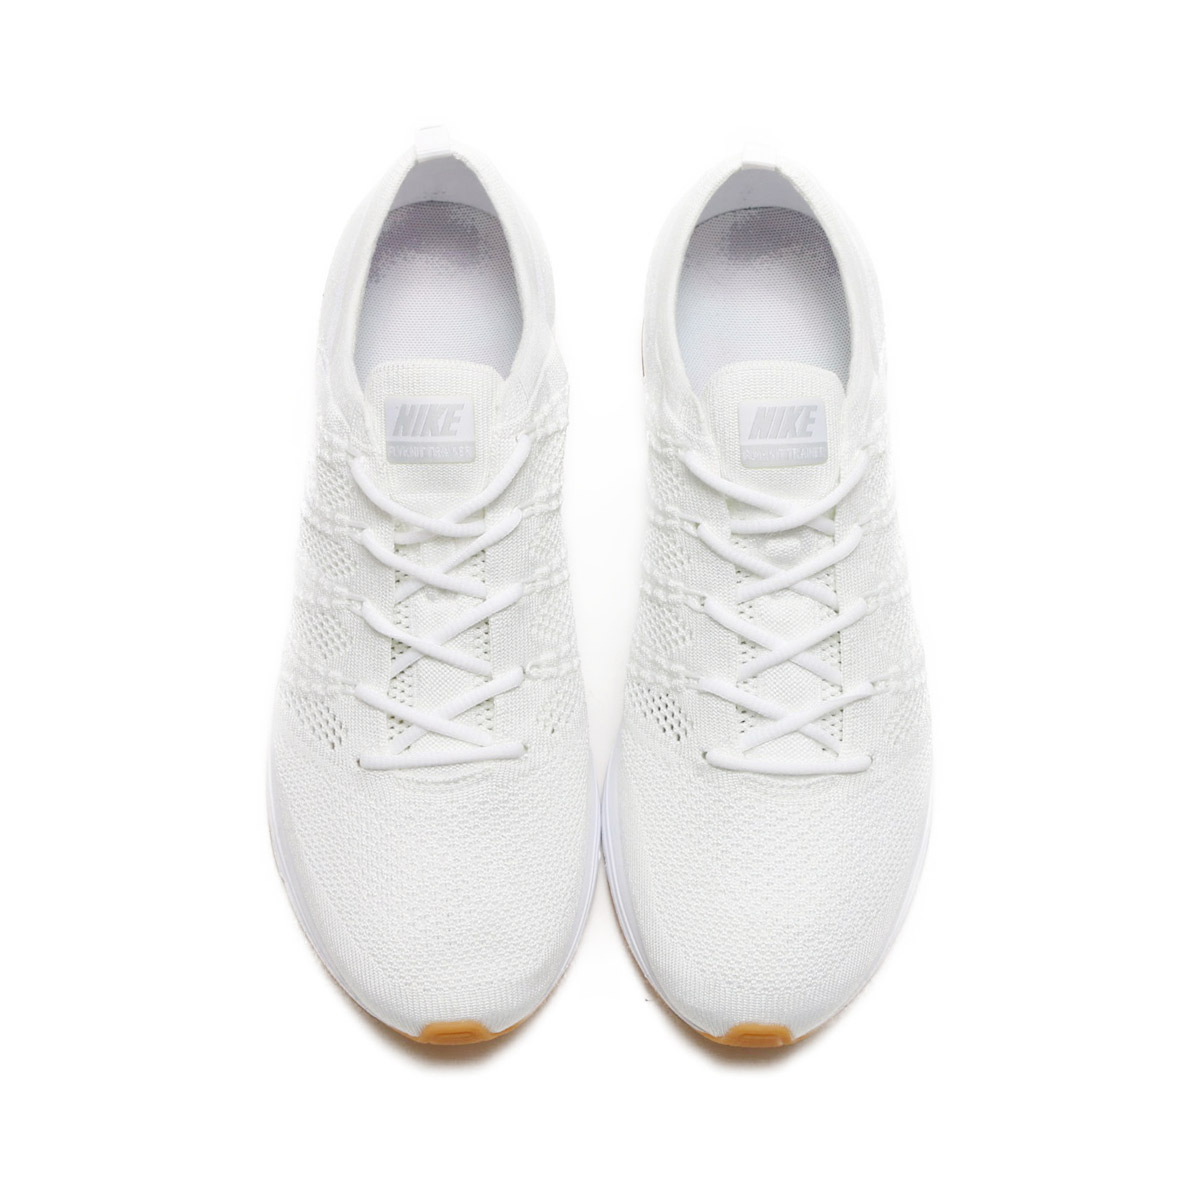 22a9bdfb8c2c NIKE FLYKNIT TRAINER (Nike fried food knit trainer) (WHITE WHITE-WHITE-GUM  LIGHT BROWN) 18SU-S